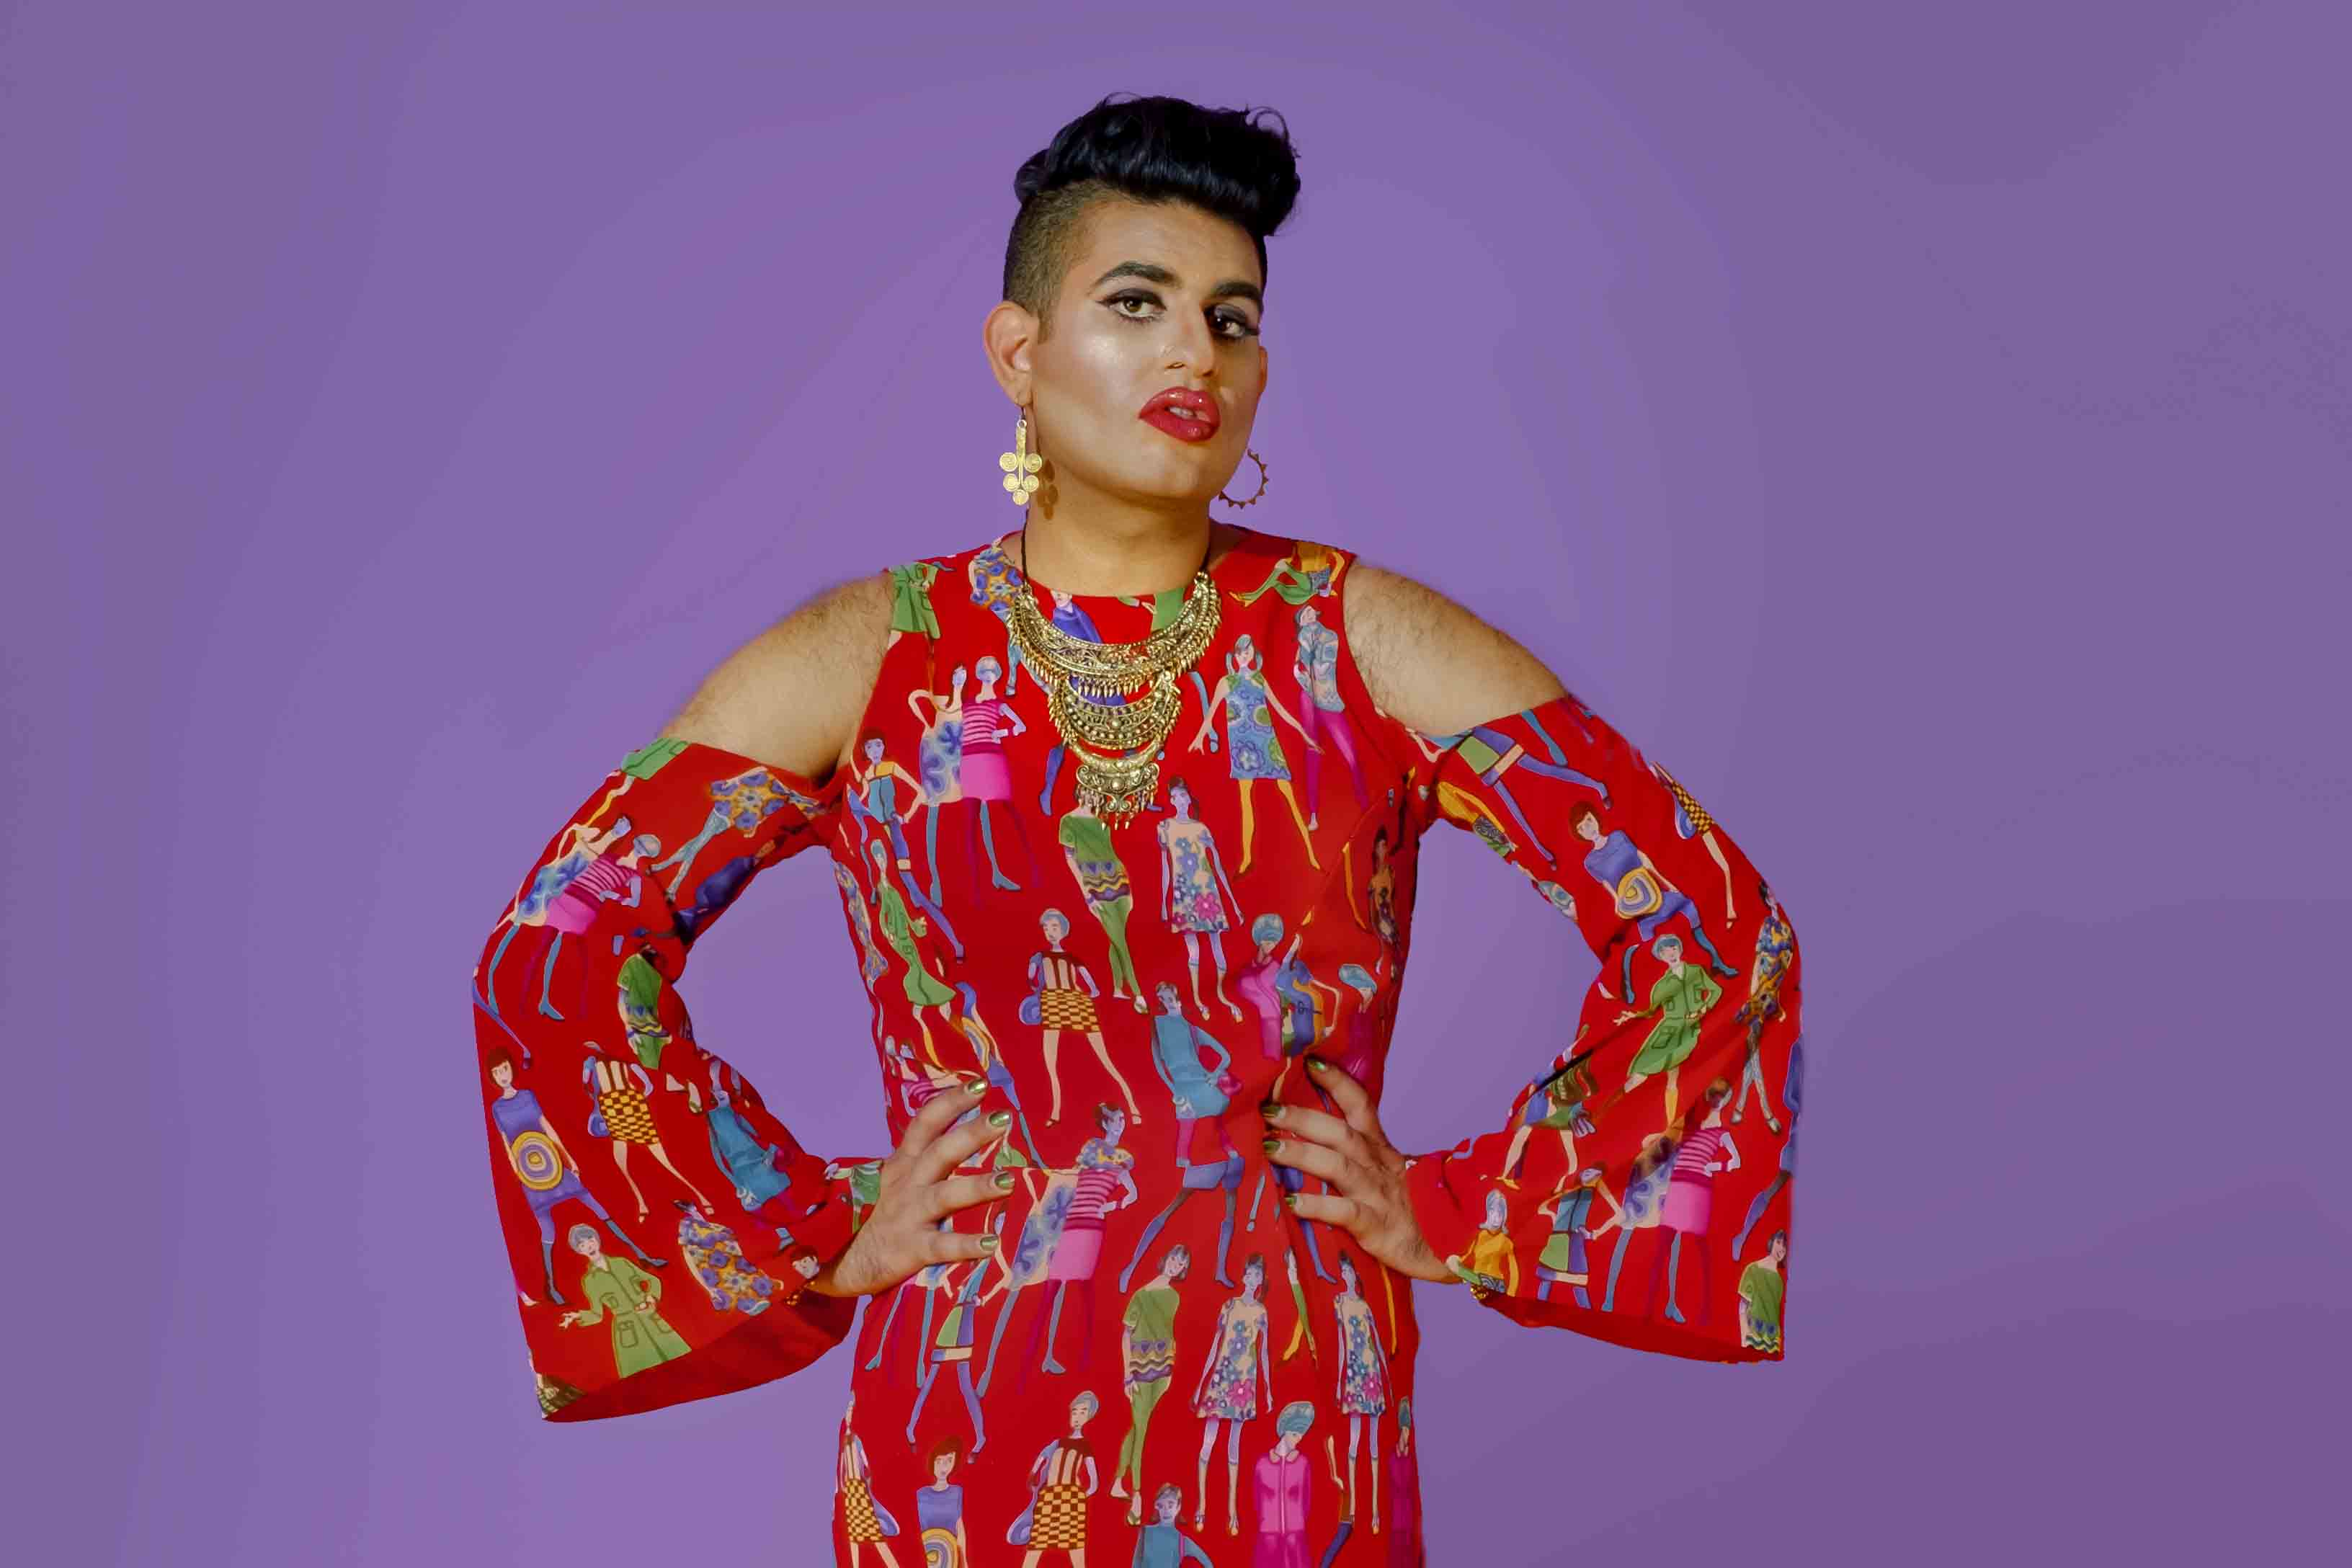 Alok Vaid-Menon, Featured, Gender Non-Conforming, LGBTQIA, Online Exclusive, Performance Art, Poetry, Queer, Queer Politics, Trans, Transfemininity